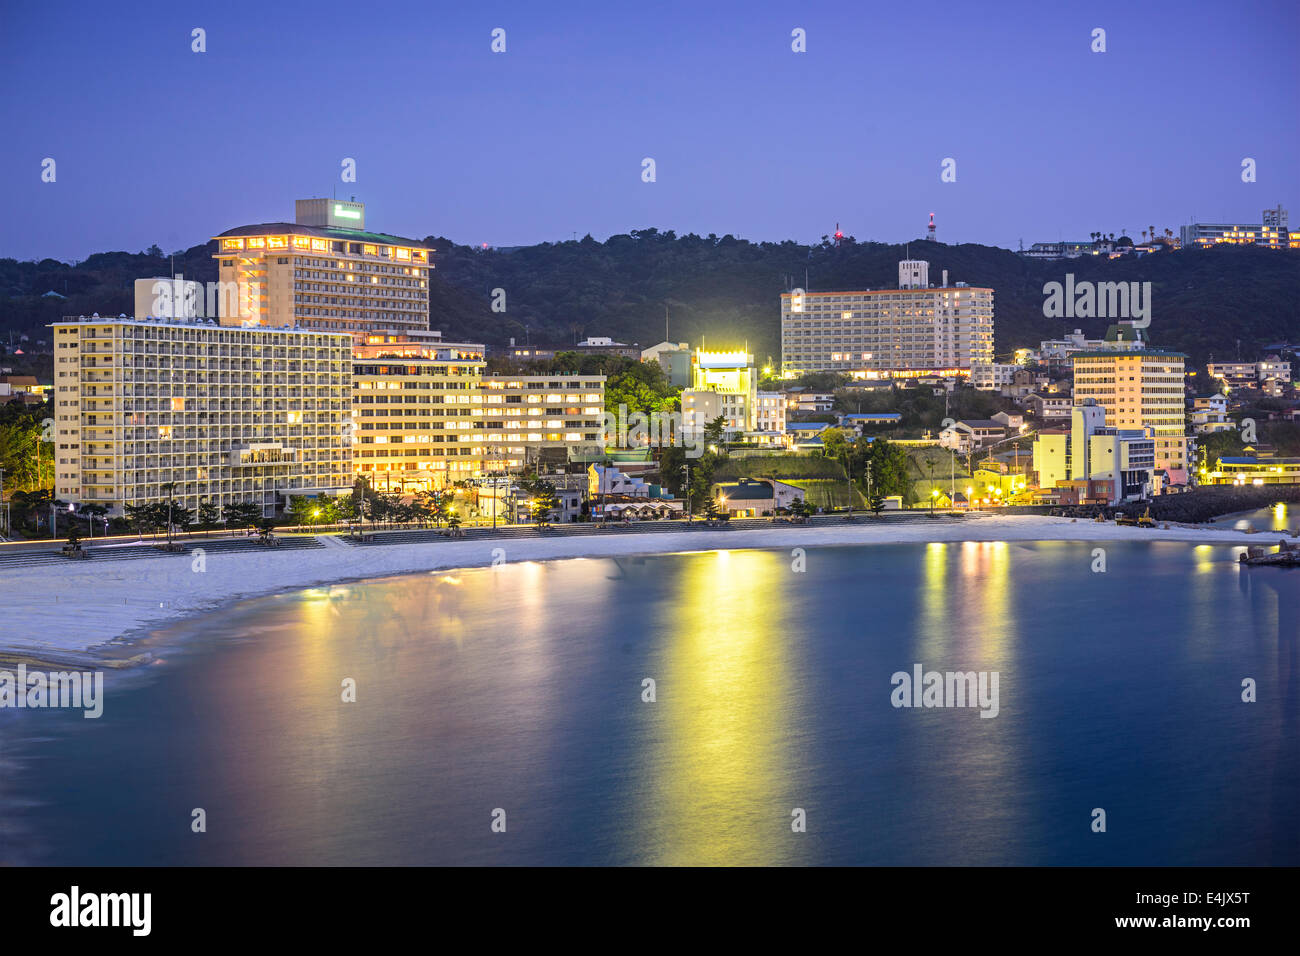 Shirahama, Japan skyline at the beachfront resorts. - Stock Image